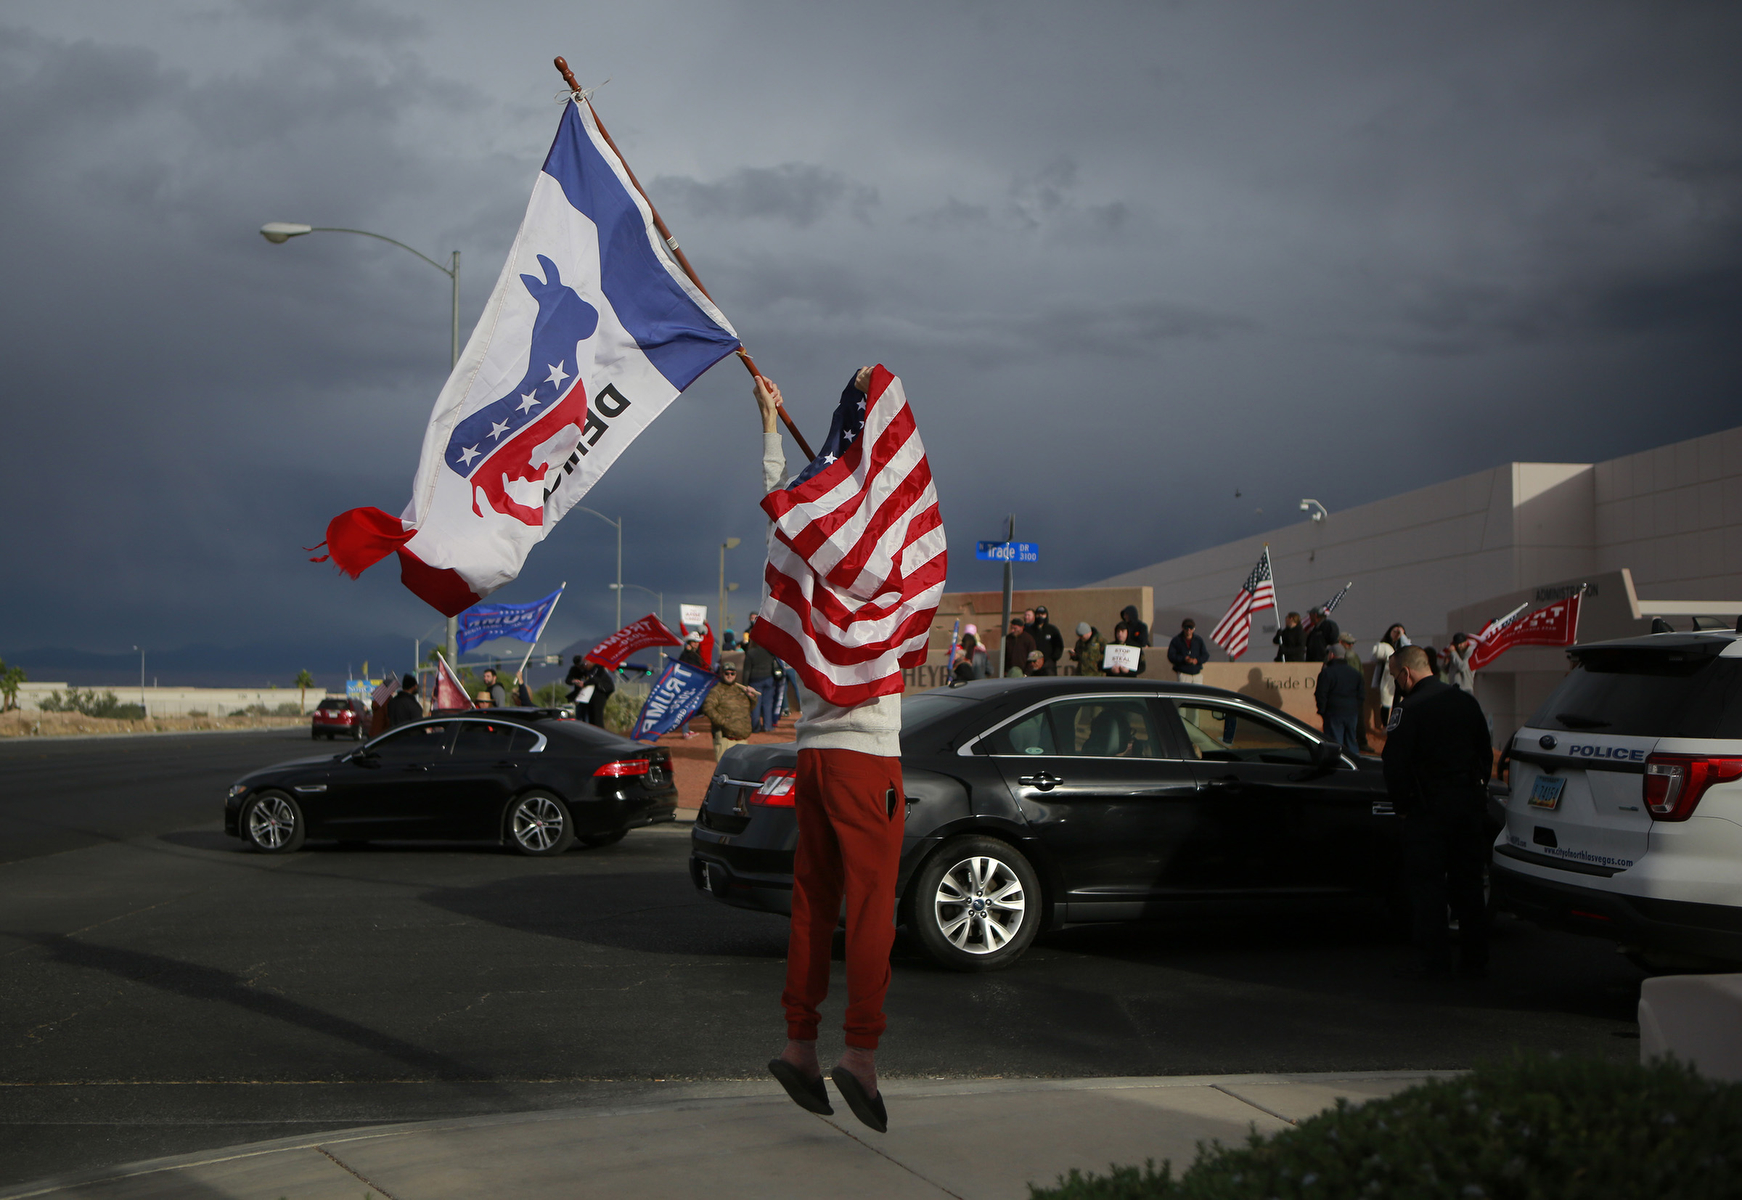 Kevin Abrahami jumps up and down as he waves a Democrat flag when a car passes with passengers showing solidarity with him at Clark County Election Department November 7, 2020, in North Las Vegas. Donald Trump supporters rally across the street from Abrahami. (Photo by Ronda Churchill/AFP)